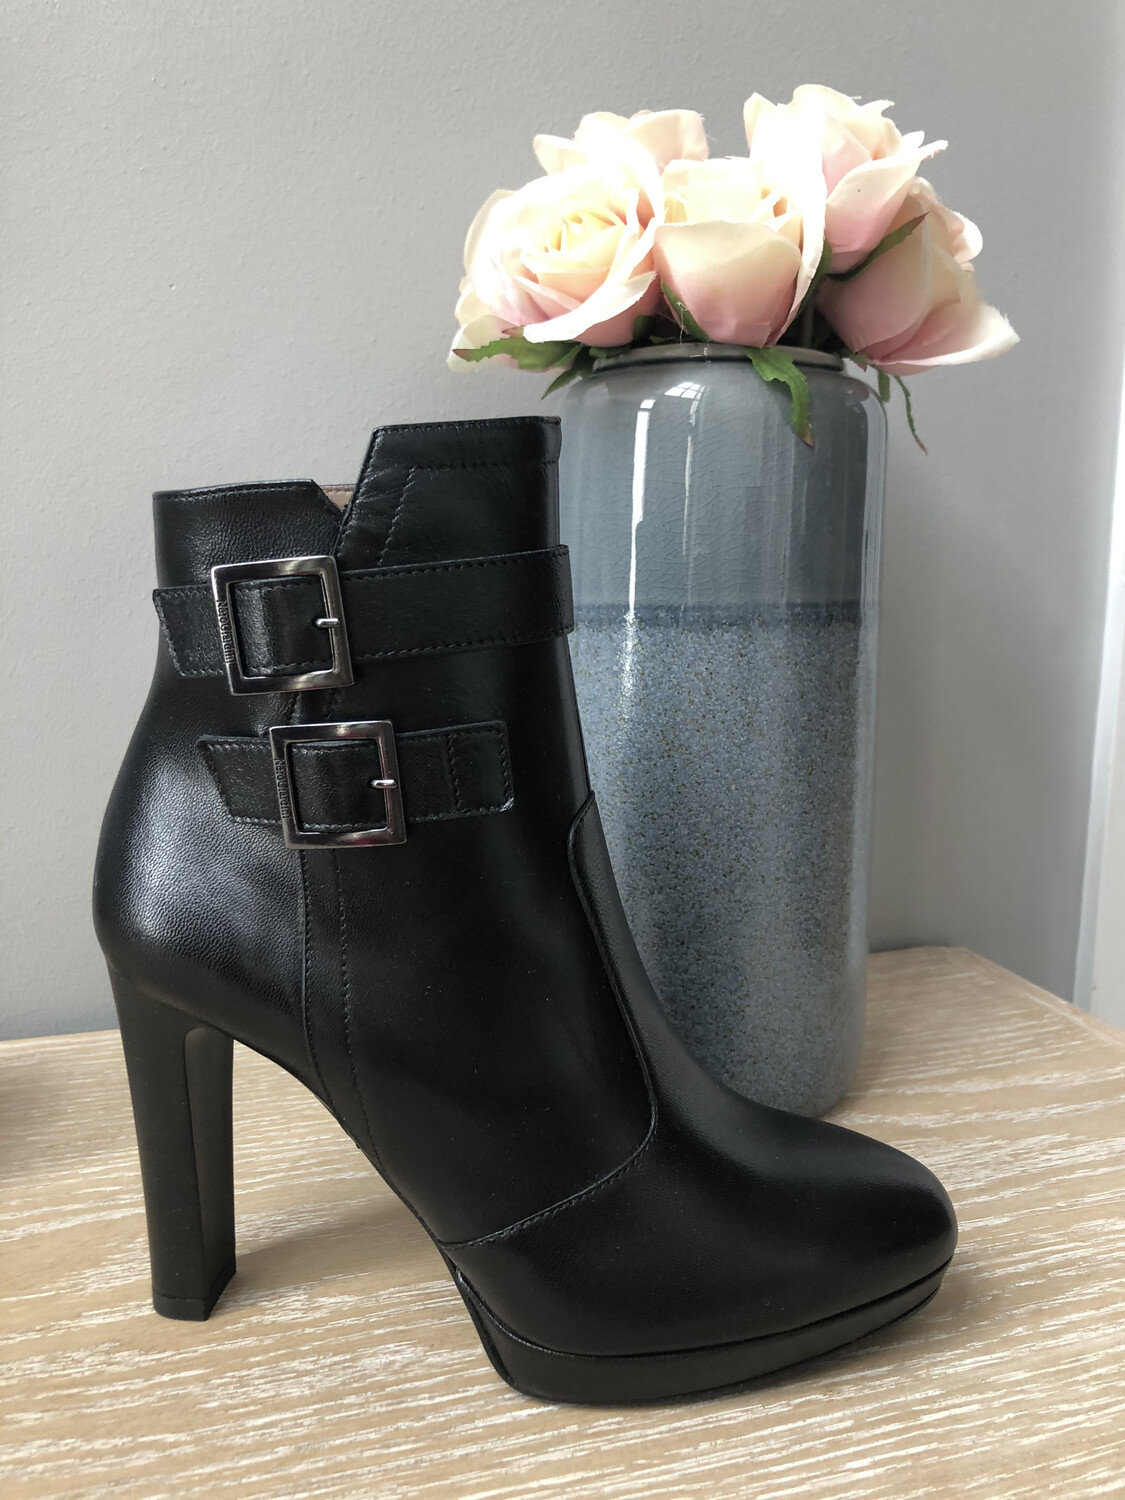 Black High Heel Platform Ankle Boot With Buckle Detail